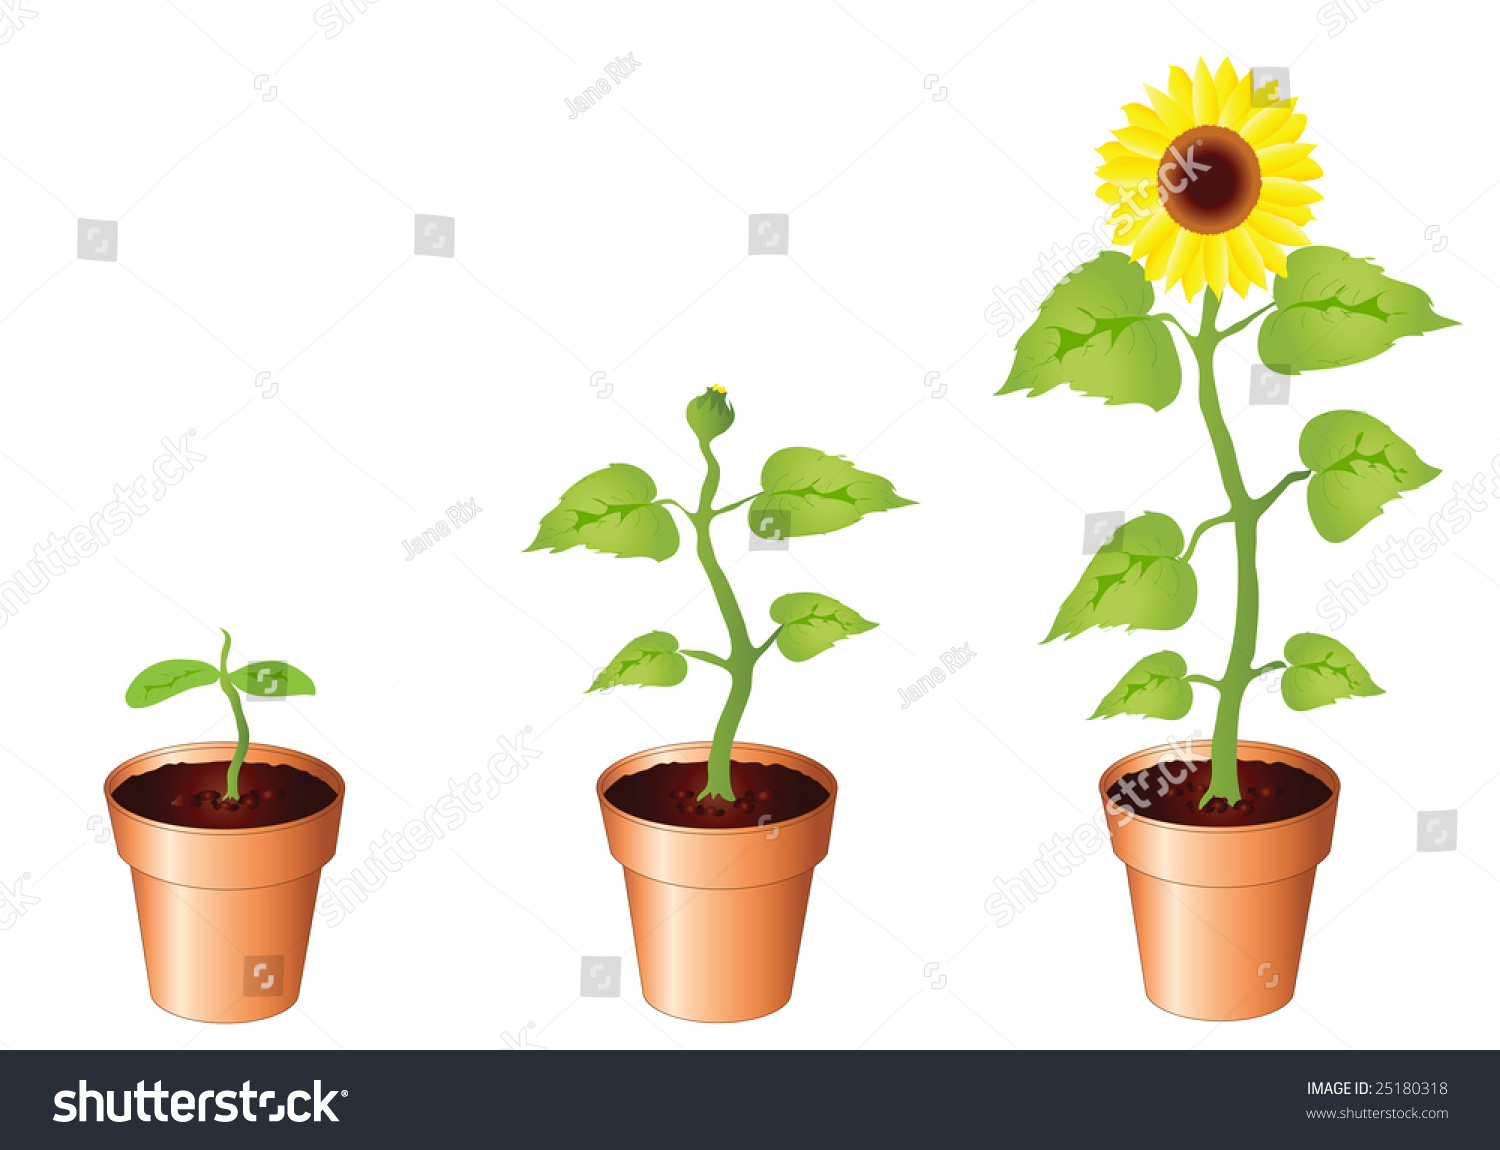 Stages Of A Flower Blooming flower growth stages stock photos, images ...